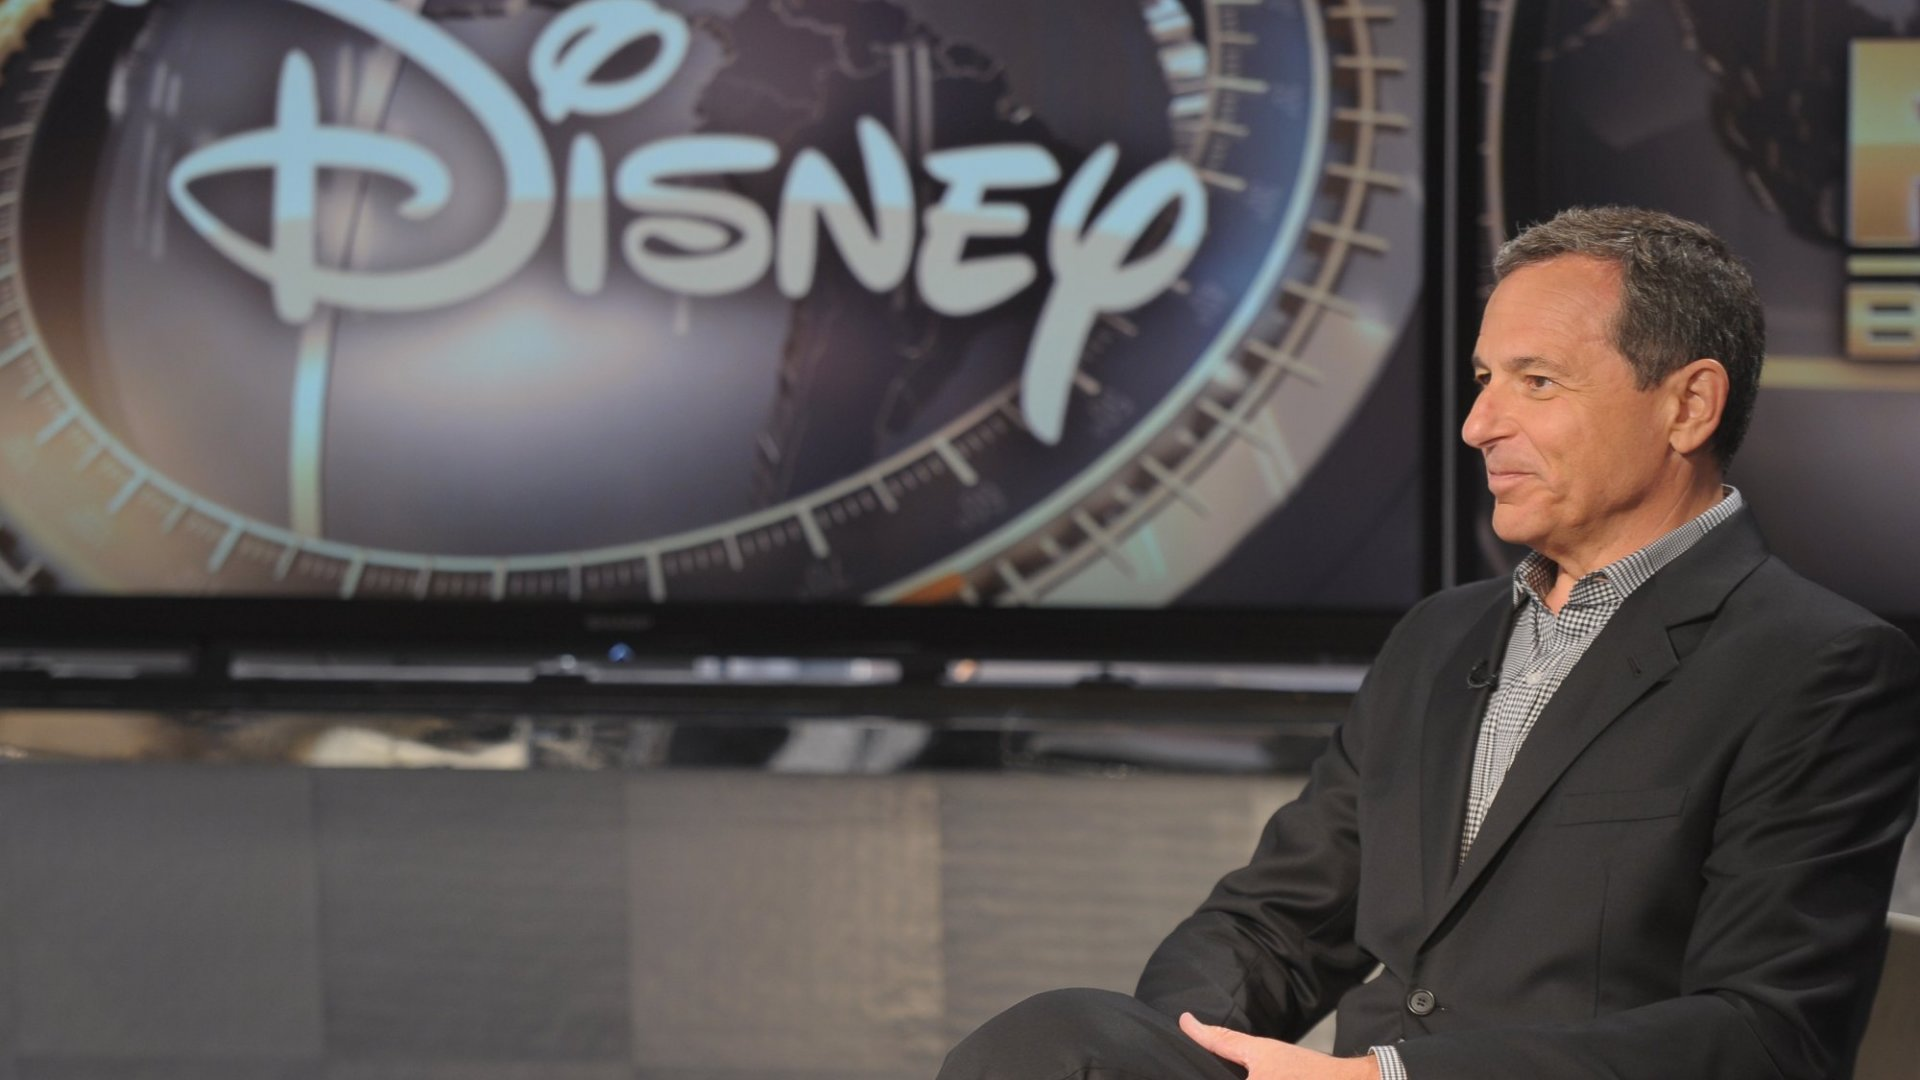 Disney's Breakup with Netflix Won't Go Well Without a Platform